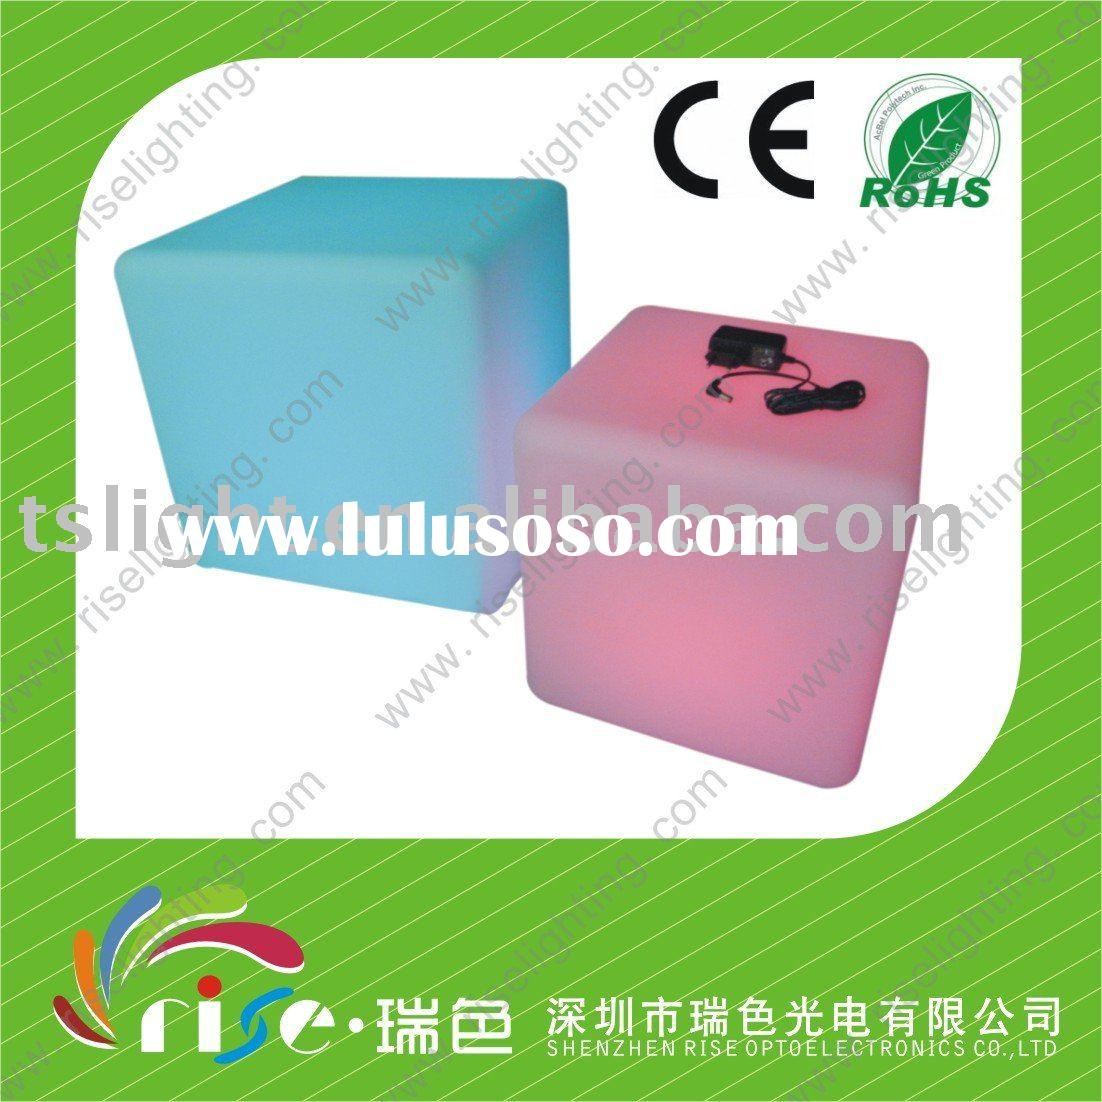 Battery operated light up LED cube